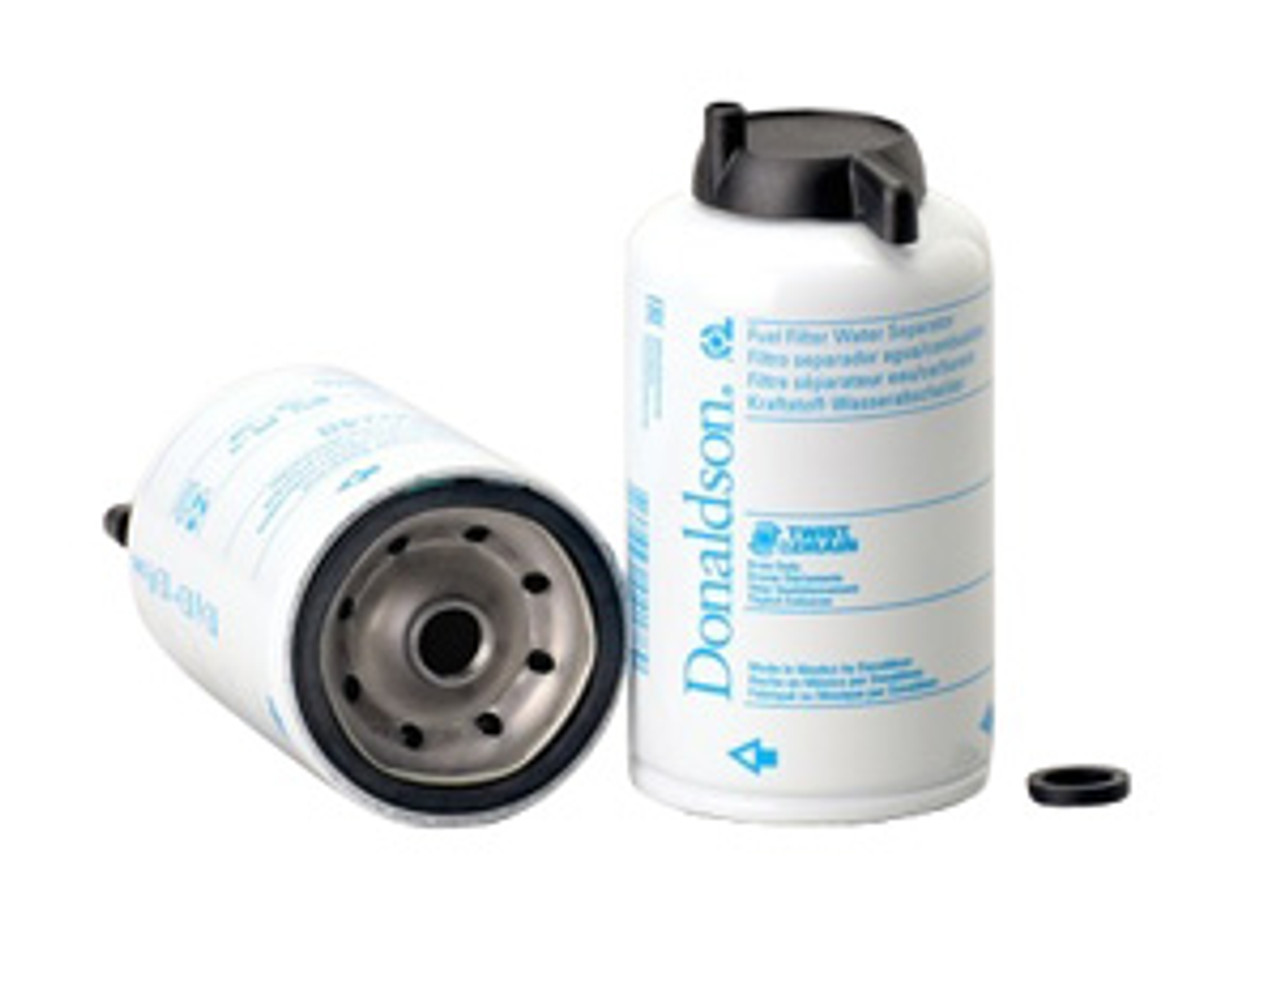 Fuel Filter For Case® Excavator | Replaces OEM # 84299977 - All Skidsteers,  Inc.AllSkidsteers